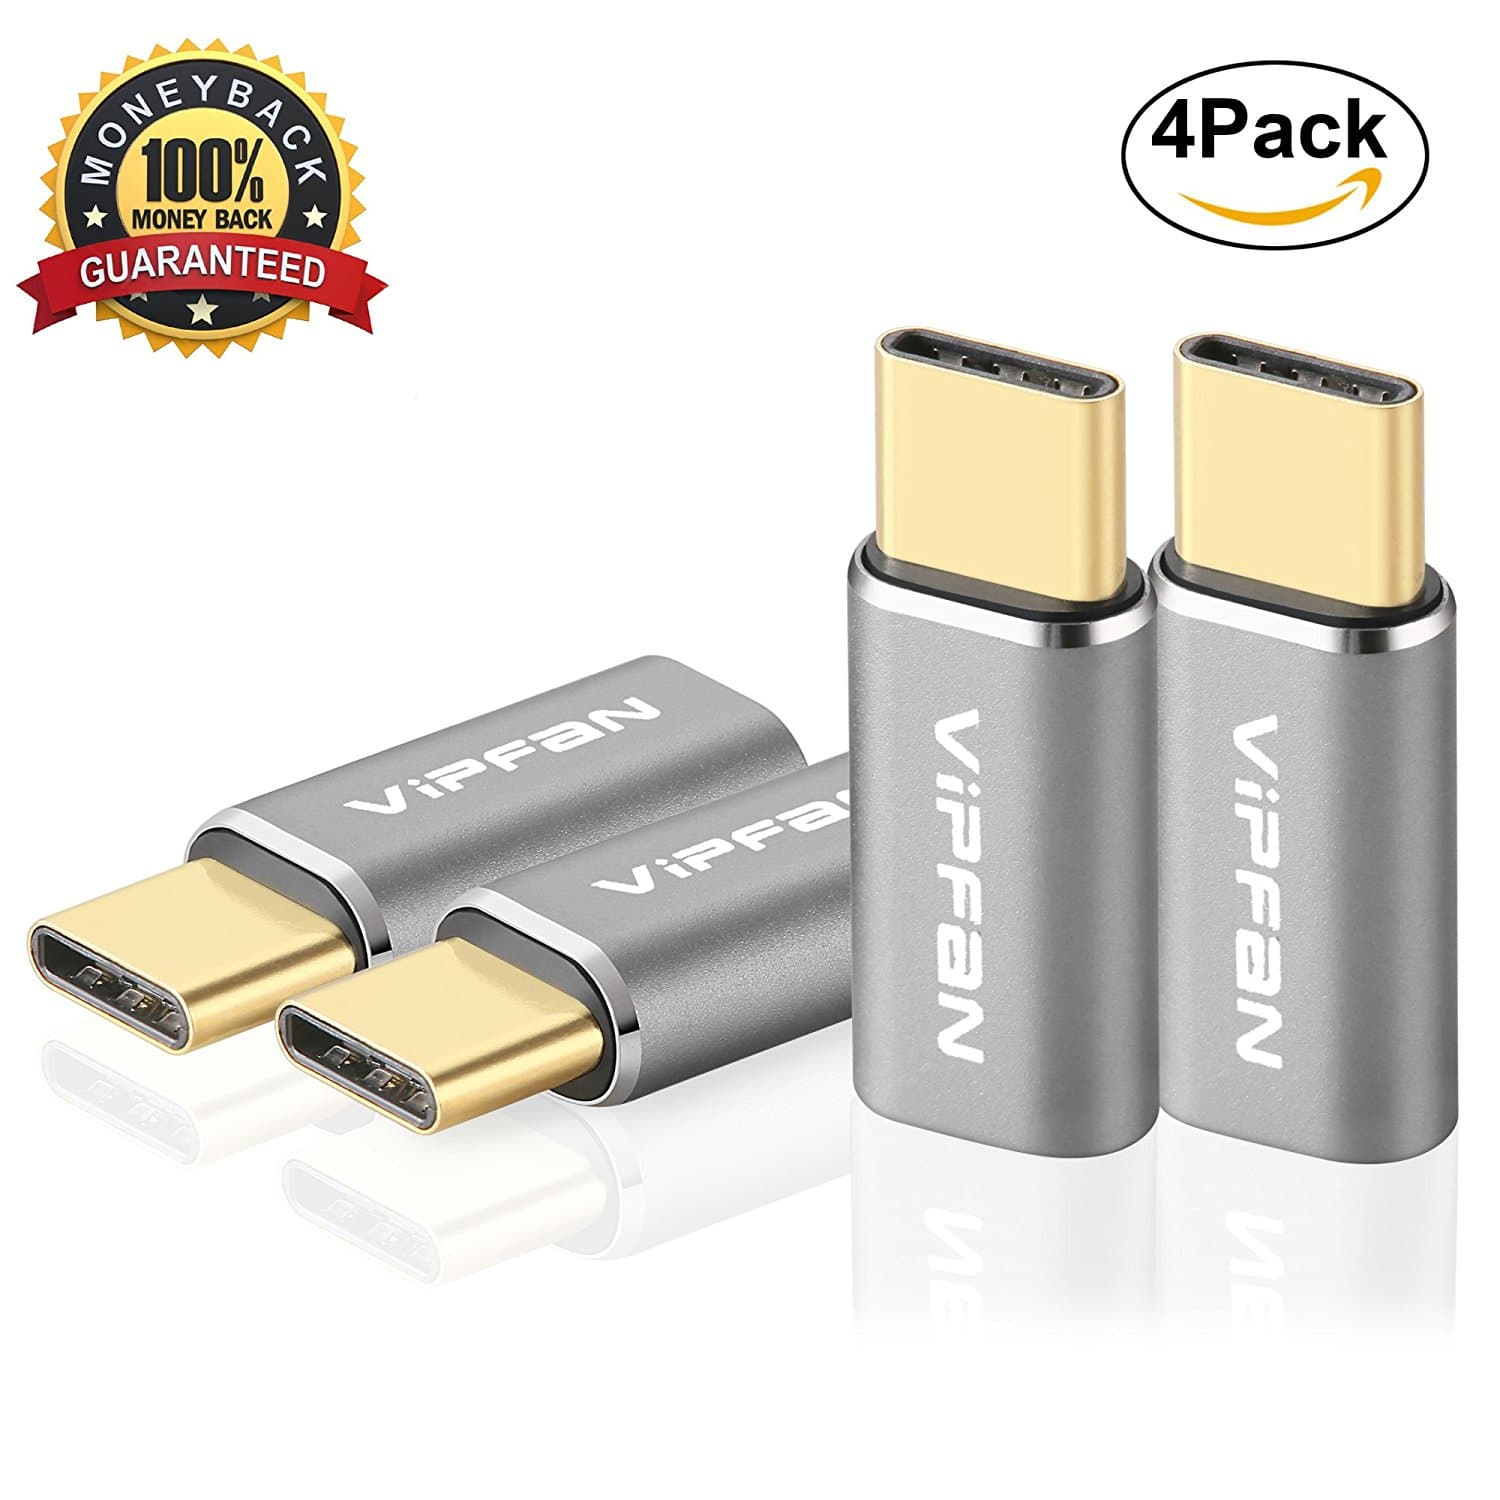 USB C adapter, VIPFAN USB-C to $4.33AC 4-PACK Micro USB Convert GOLD-PLATED Connector fast charger for MacBook Samsung Galaxy S8 Plus, Google Pixel, LG V30,G6,V20, Nintendo Switch